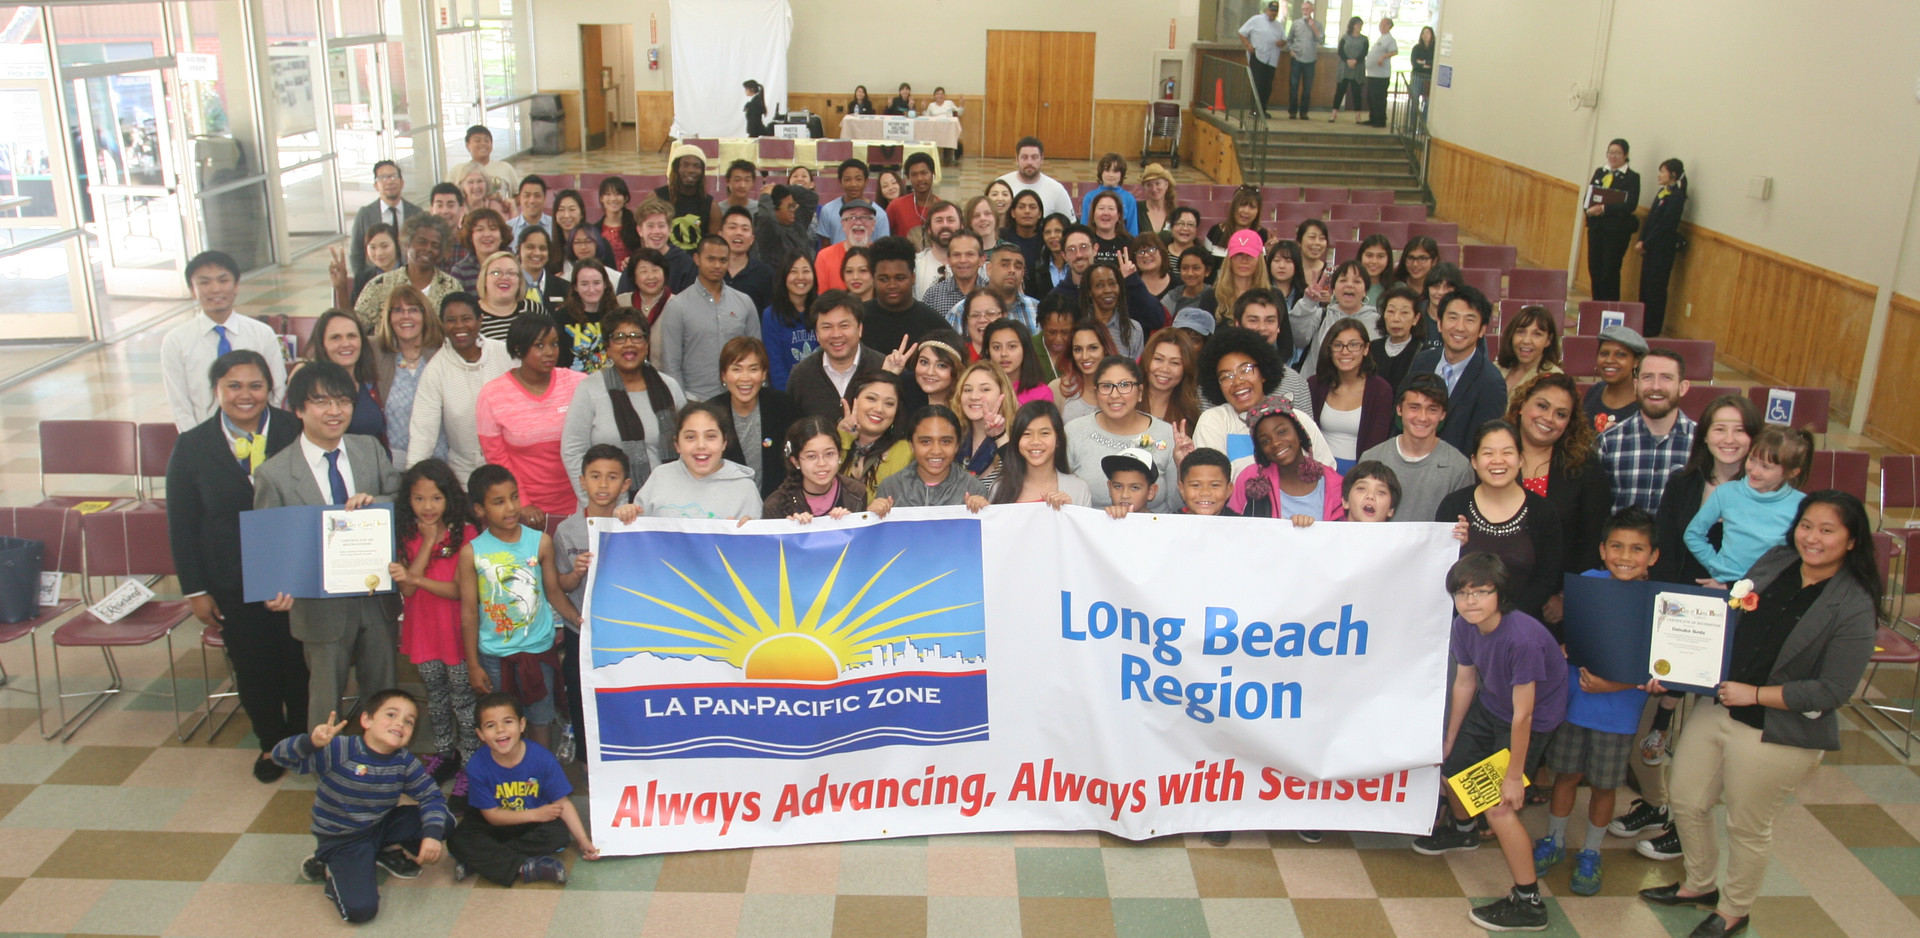 SGI-USA Long Beach Region Activities